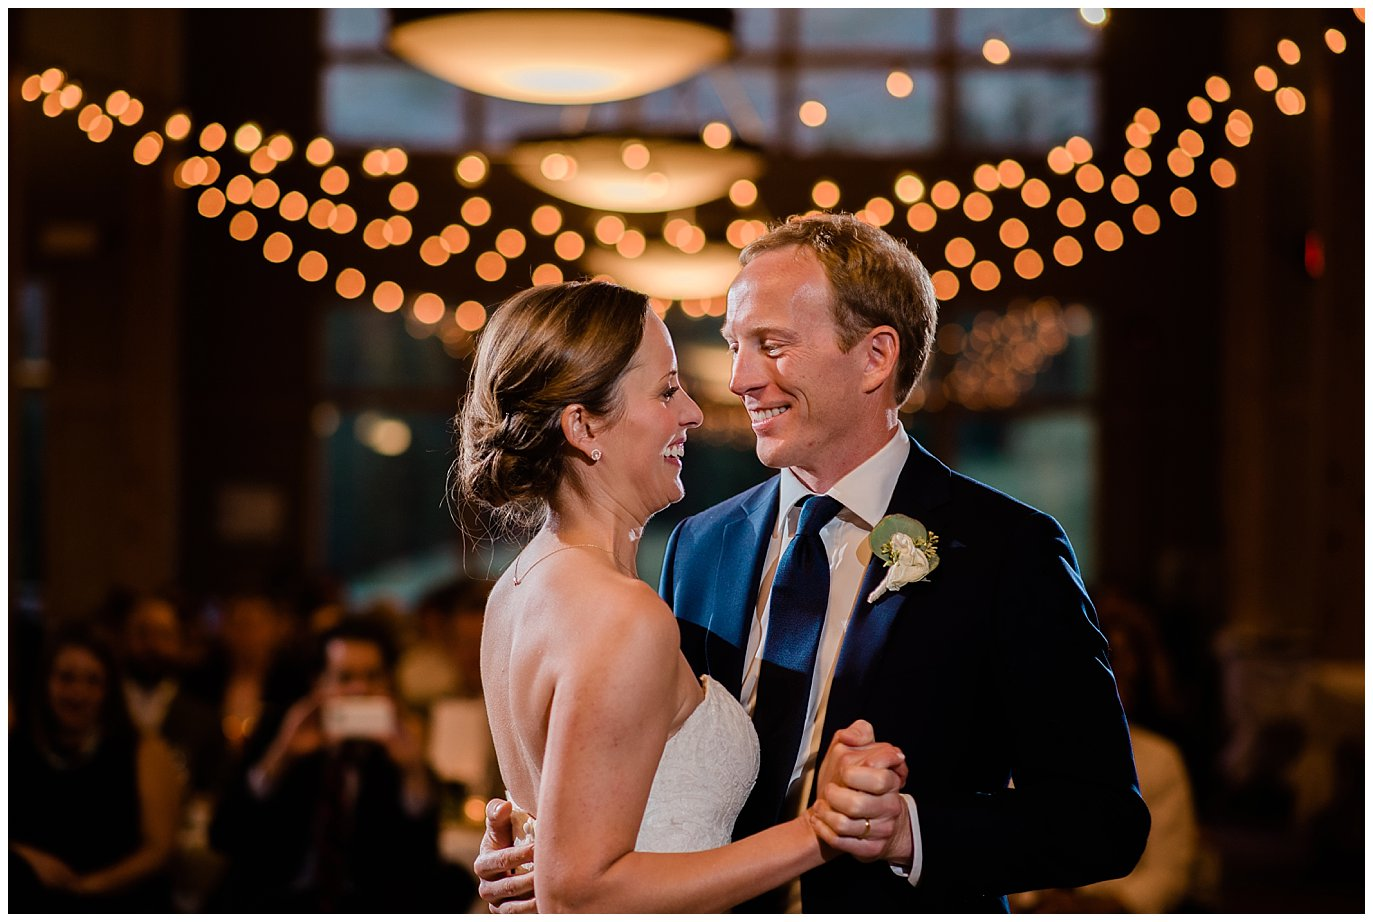 First dance at Arapahoe Basin Black Mountain Lodge Wedding by Dillon Wedding Photographer Jennie Crate